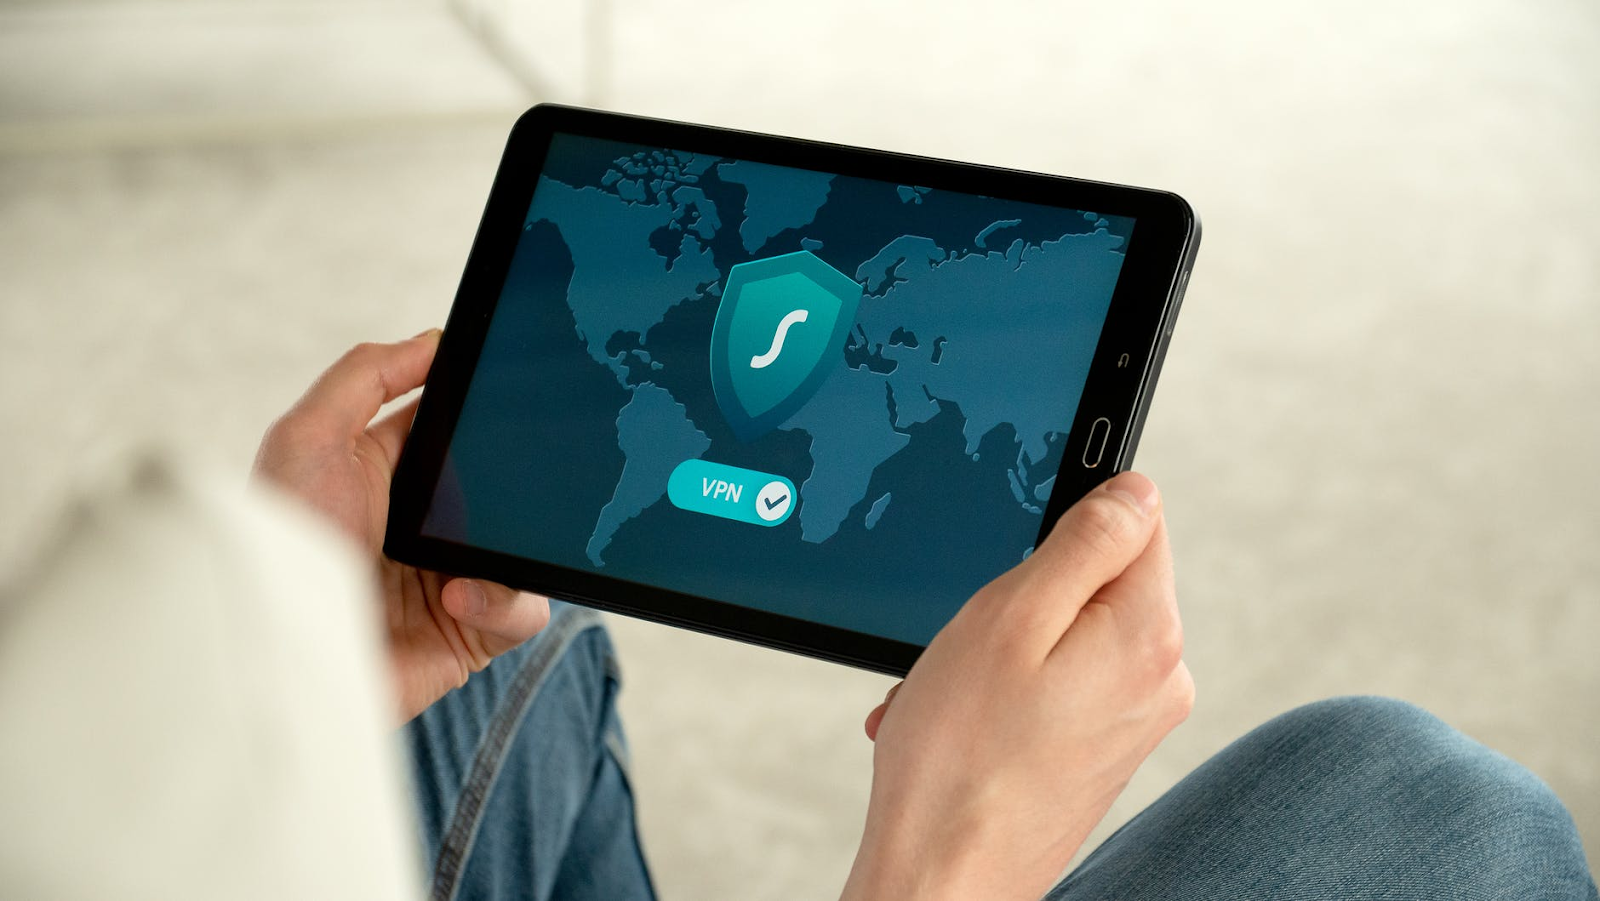 Using a tablet secured with a remote vpn